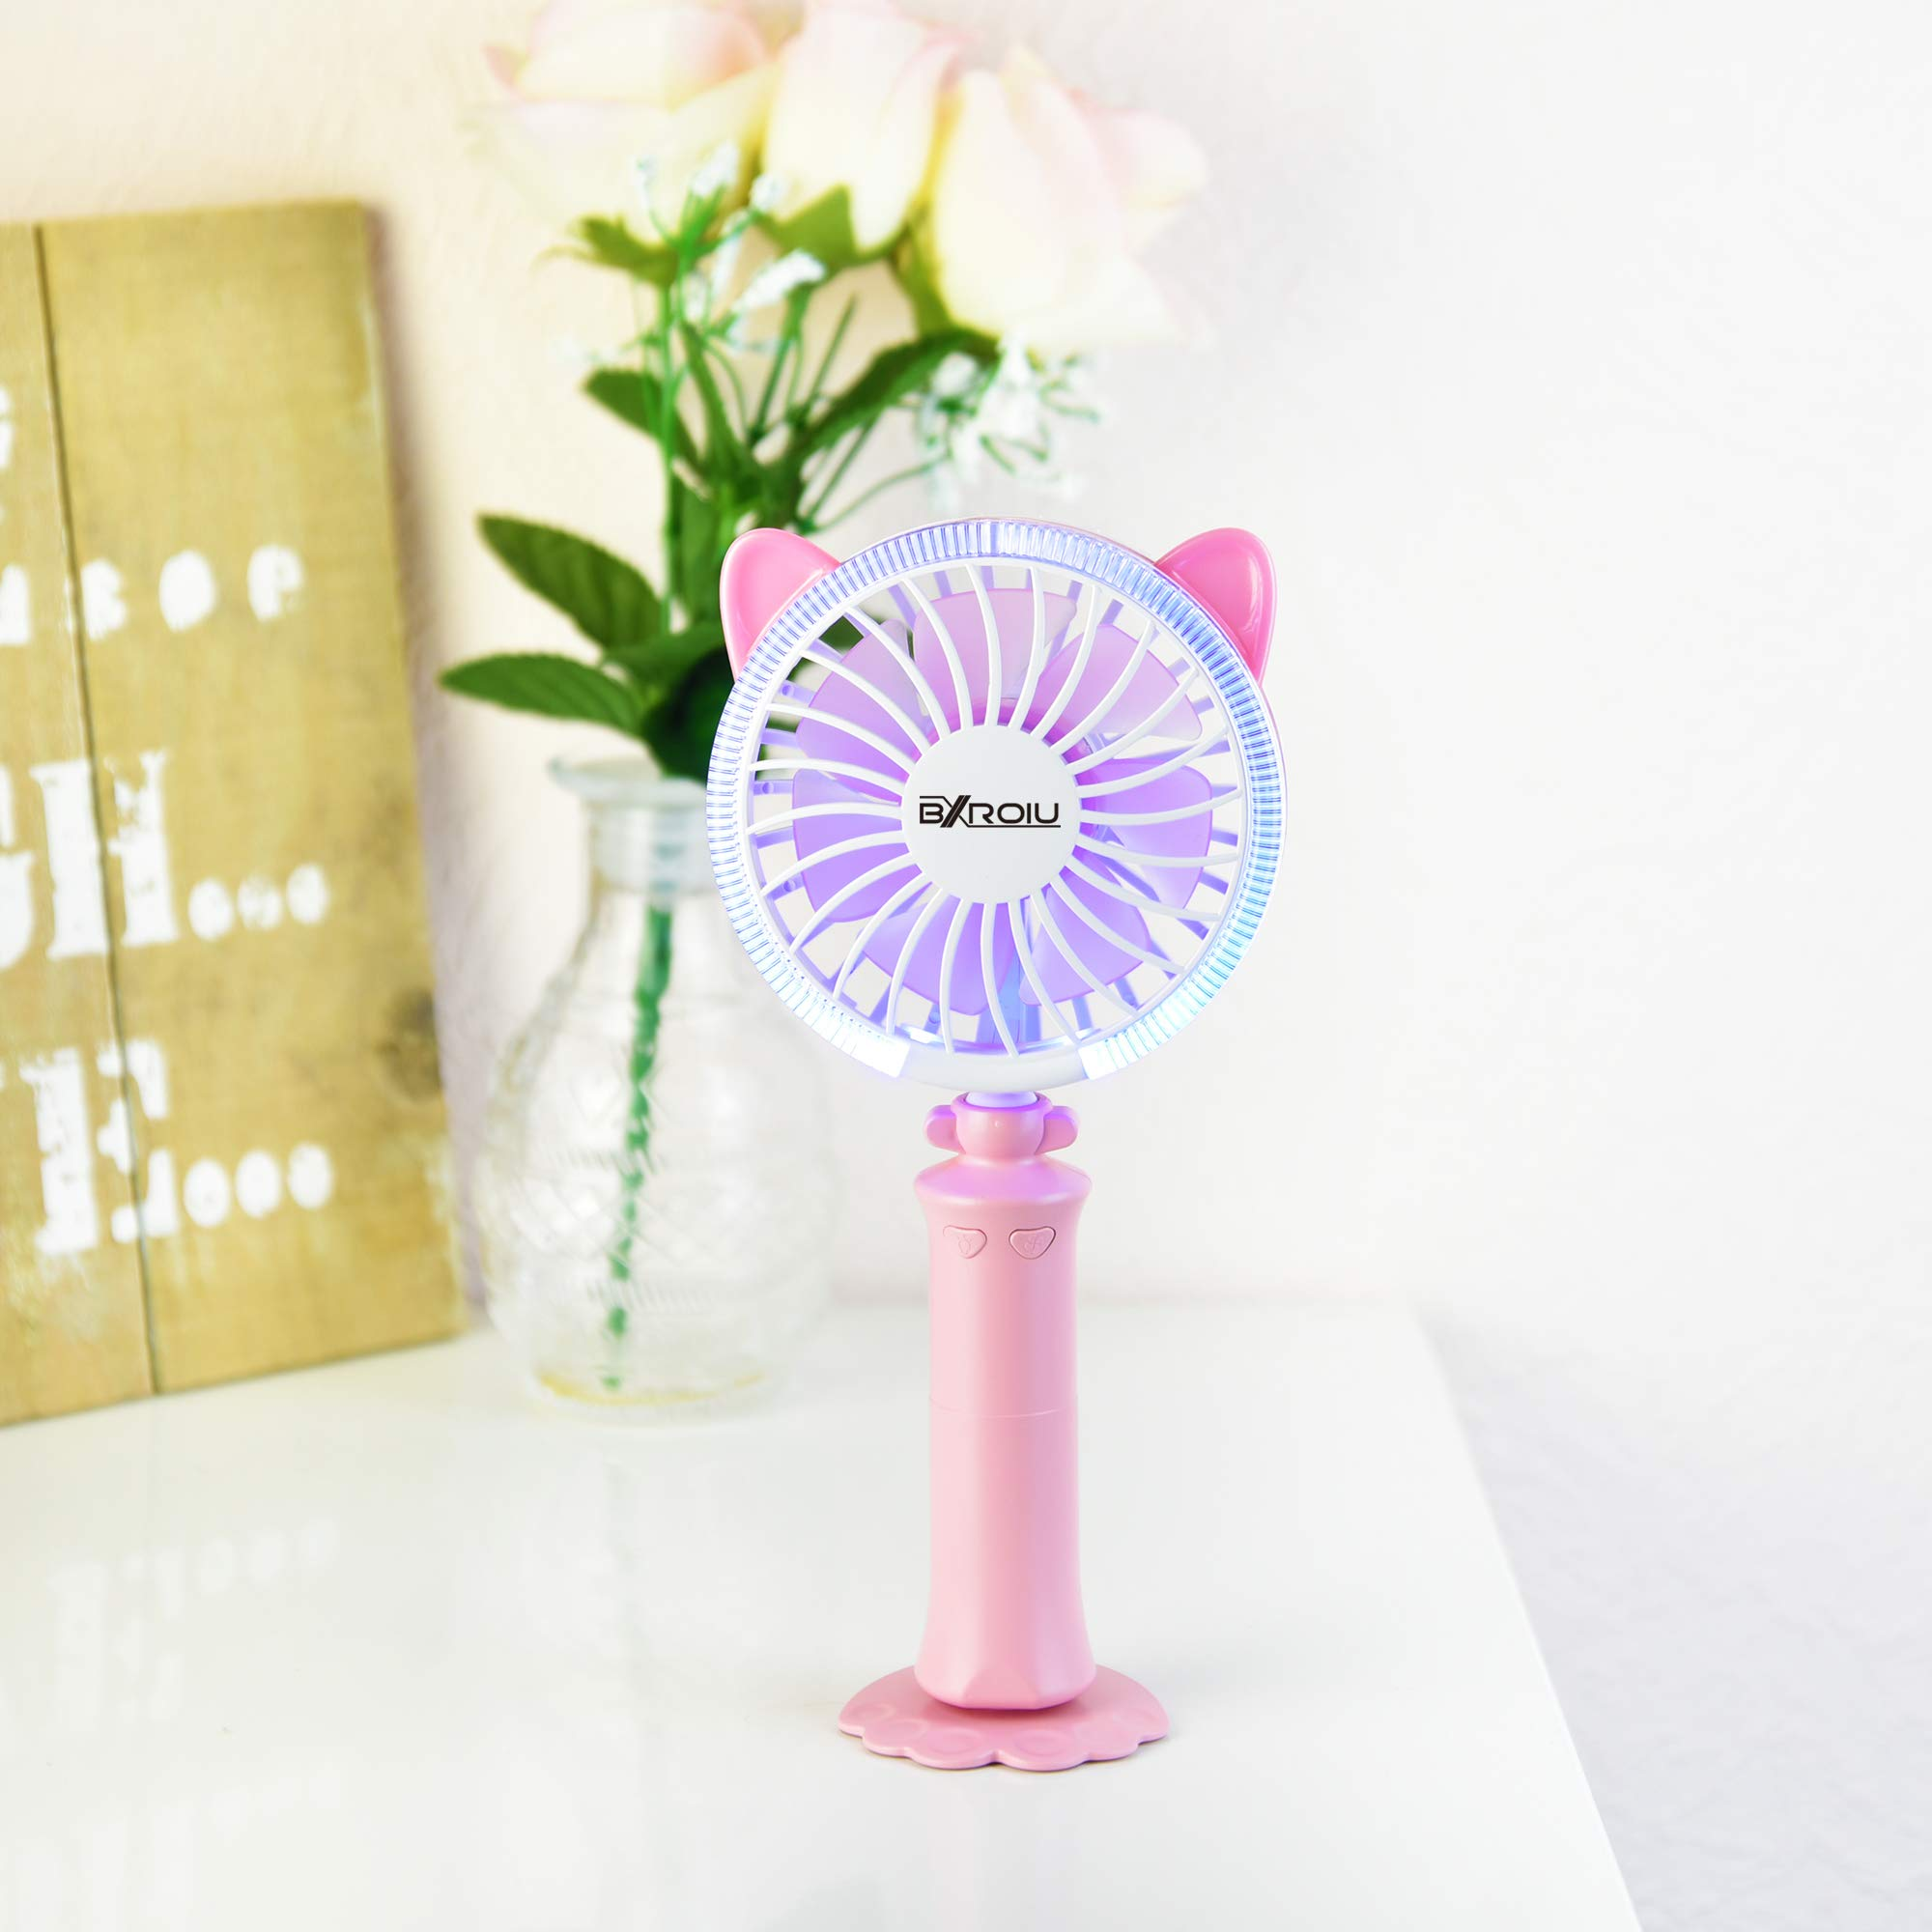 bxroiu Mini Portable Handheld Fans with Multi-color change lights USB Fan Rechargeable Battery for Kids Outdoor Household Traveling Desktop pink